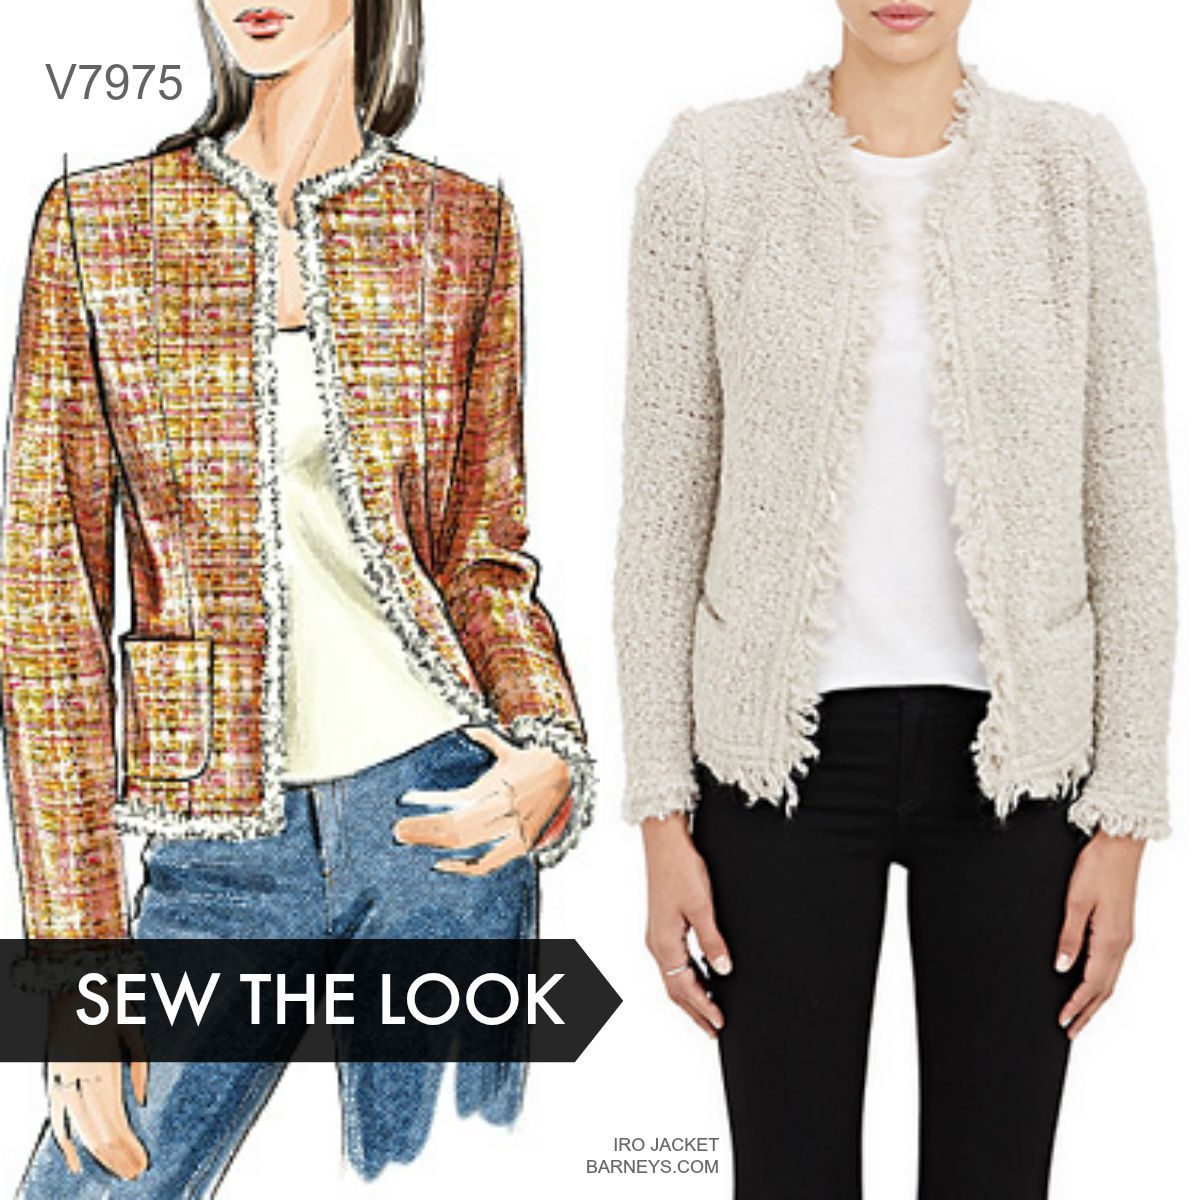 Sew The Look: Make A Chanel-style Jacket With Vogue